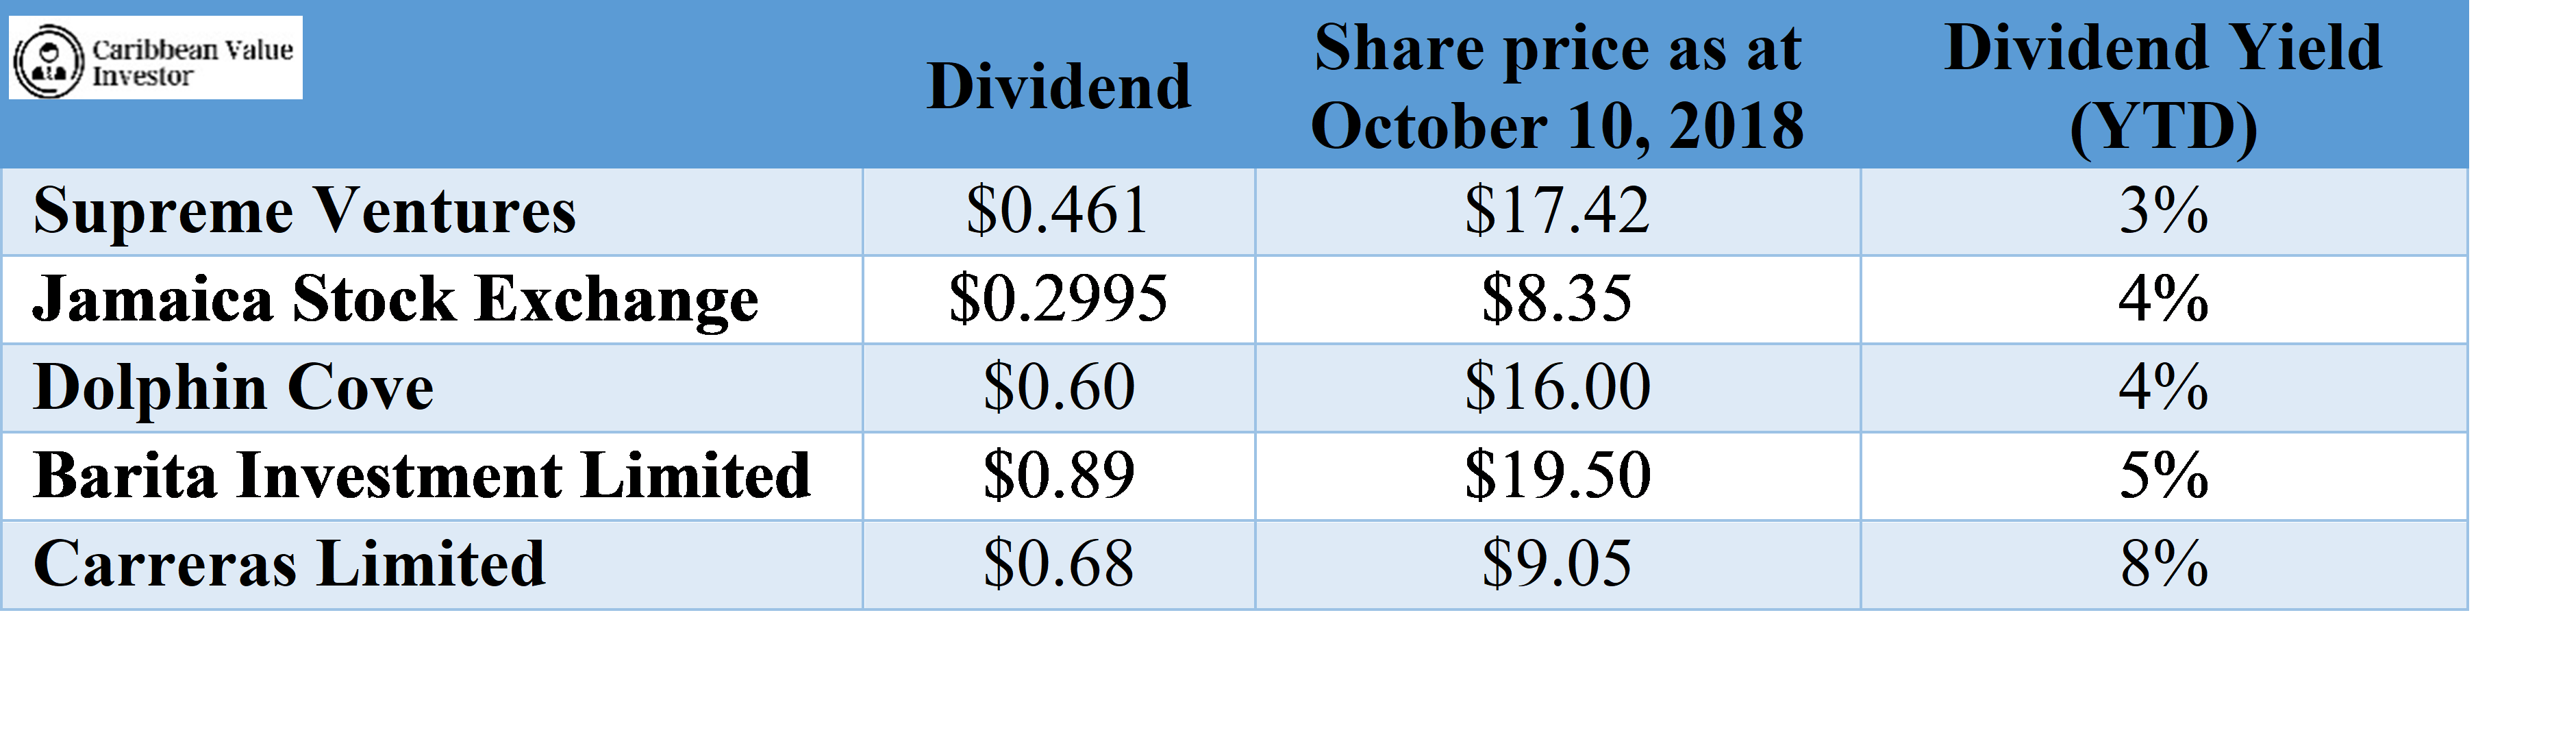 Caribbean Value Investor-Dividend yield table